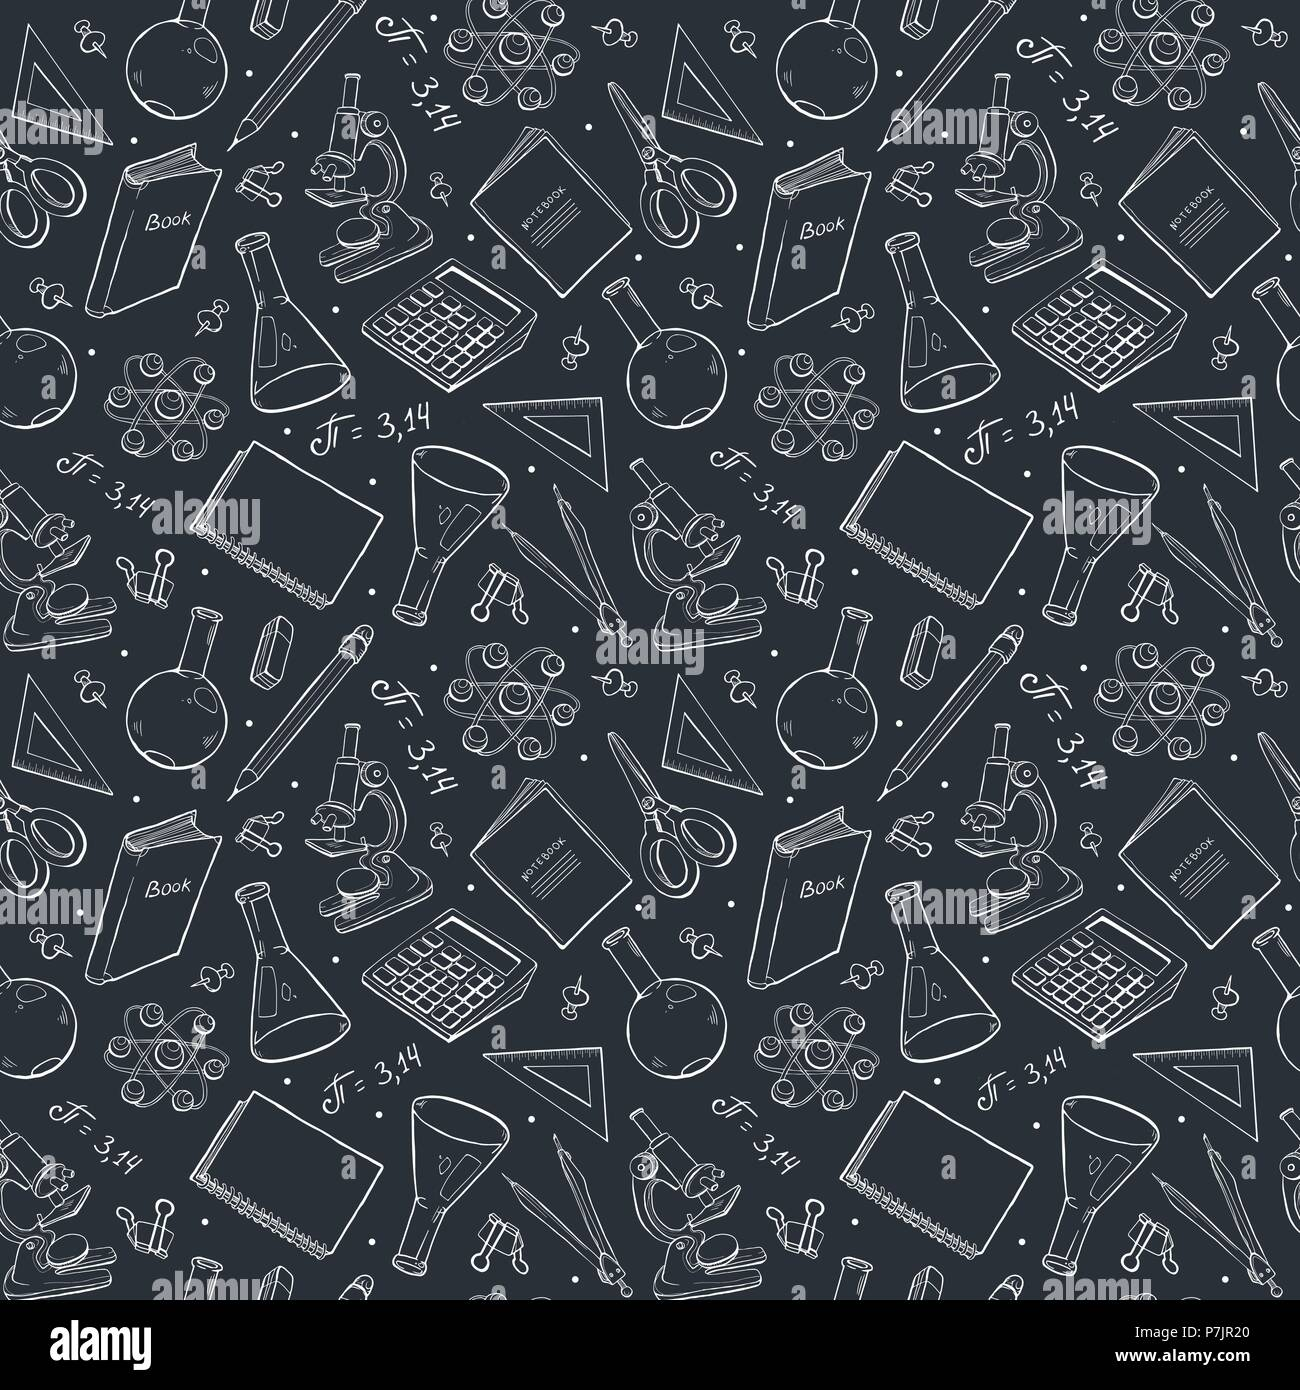 school doodle background vector seamless pattern from school